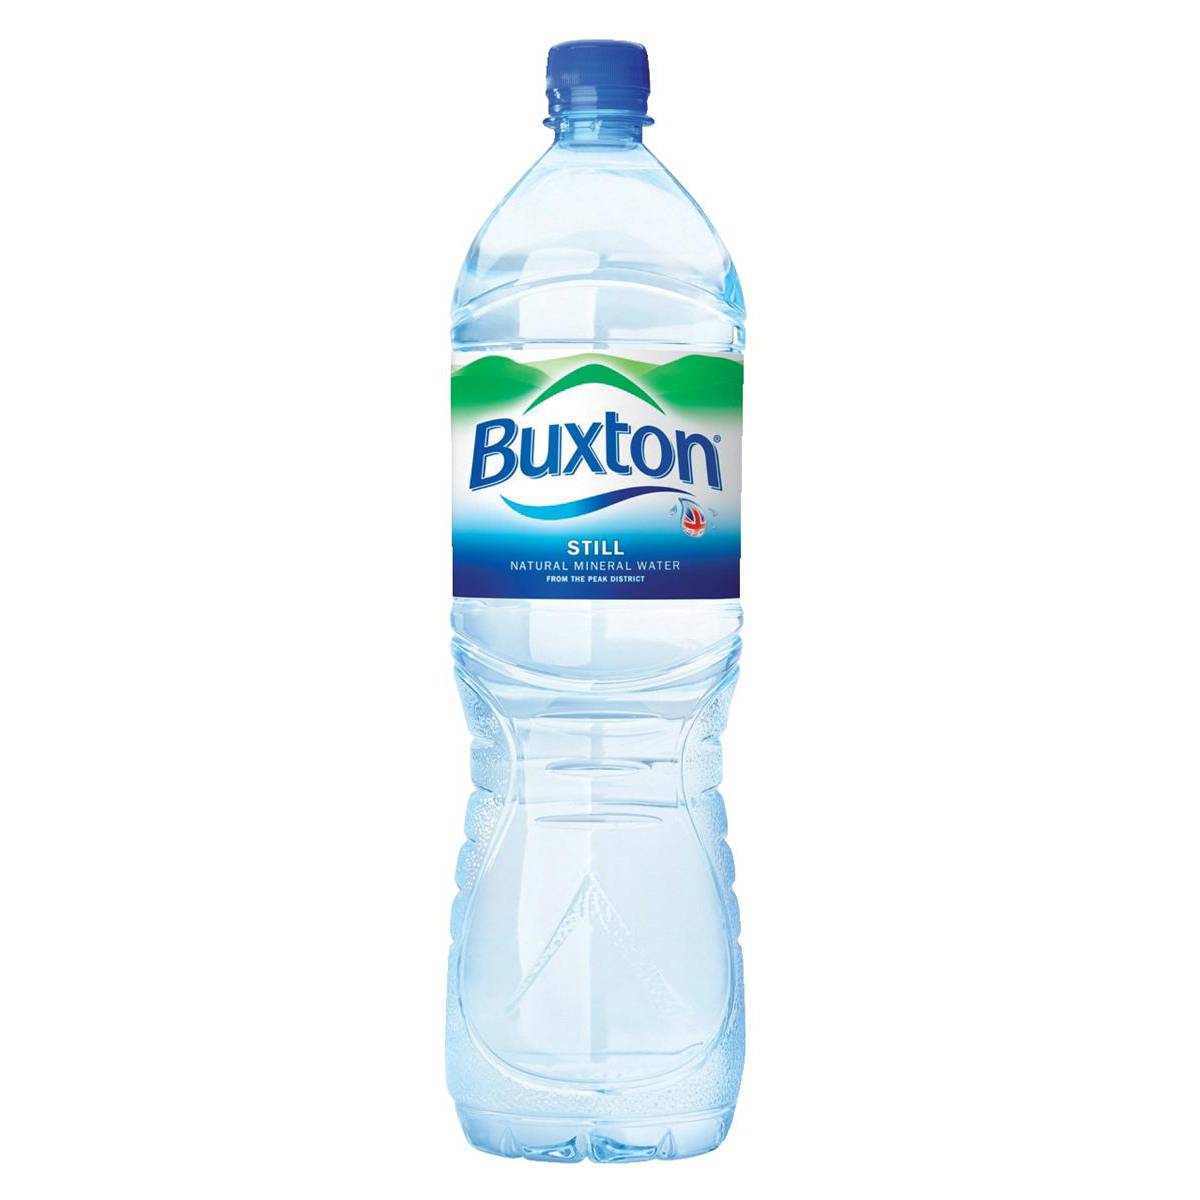 Cold Drinks Buxton Natural Mineral Water Still Bottle Plastic 1.5 Litre Ref 742900 Pack 6